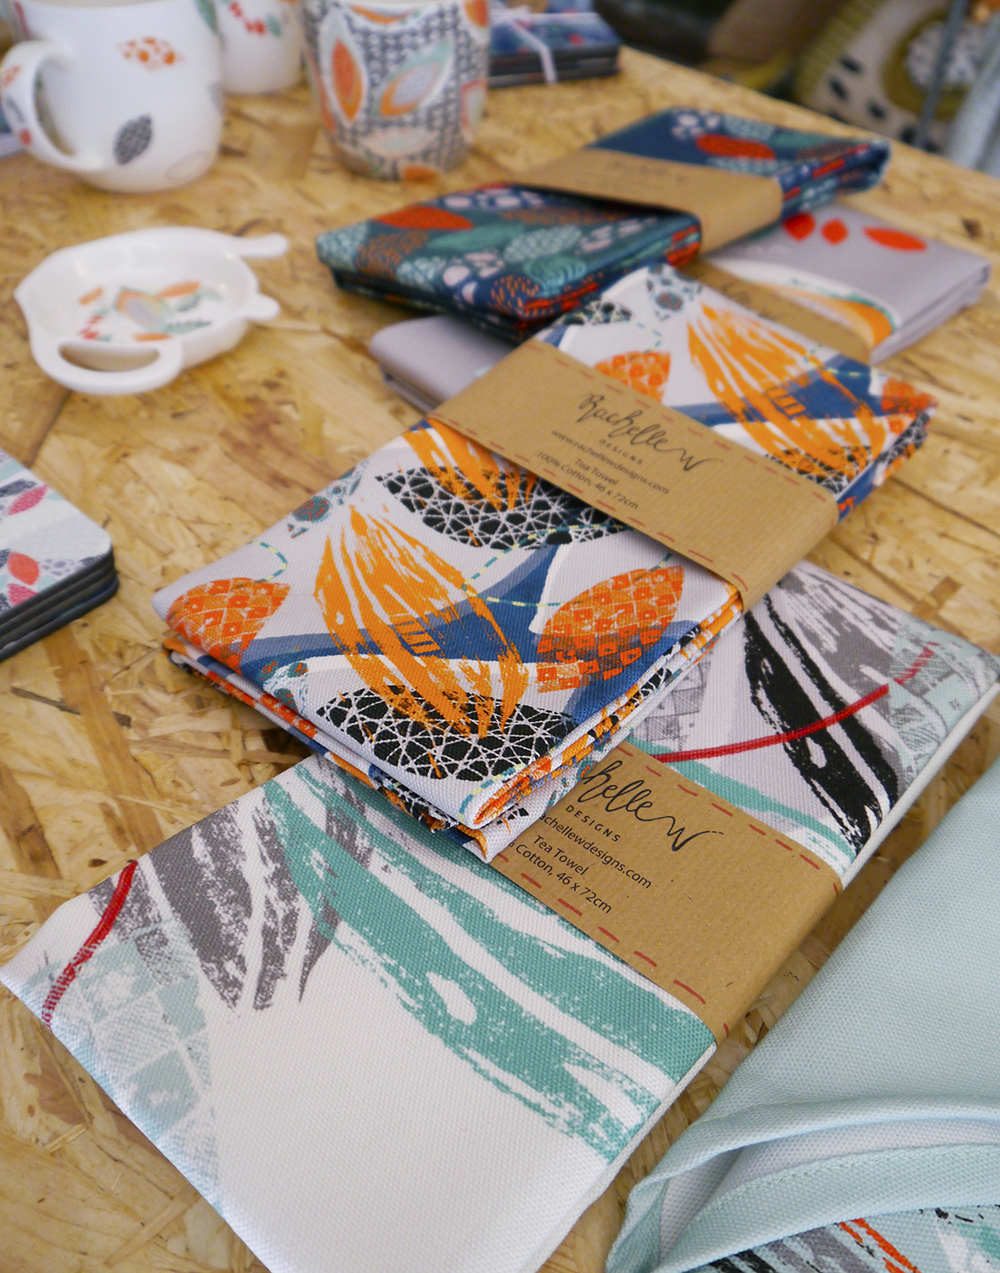 Tea Green Events, Concept Atelier, pop up shop, Dundee, The Old Flour Mill, Tea Green, Scottish design, Scottish designers, Dundee designers, Dundee bloggers, Scottish bloggers, Rachelle W Designs, colourful tea towels, printed textiles, printed mugs, colourful coasters, homewear